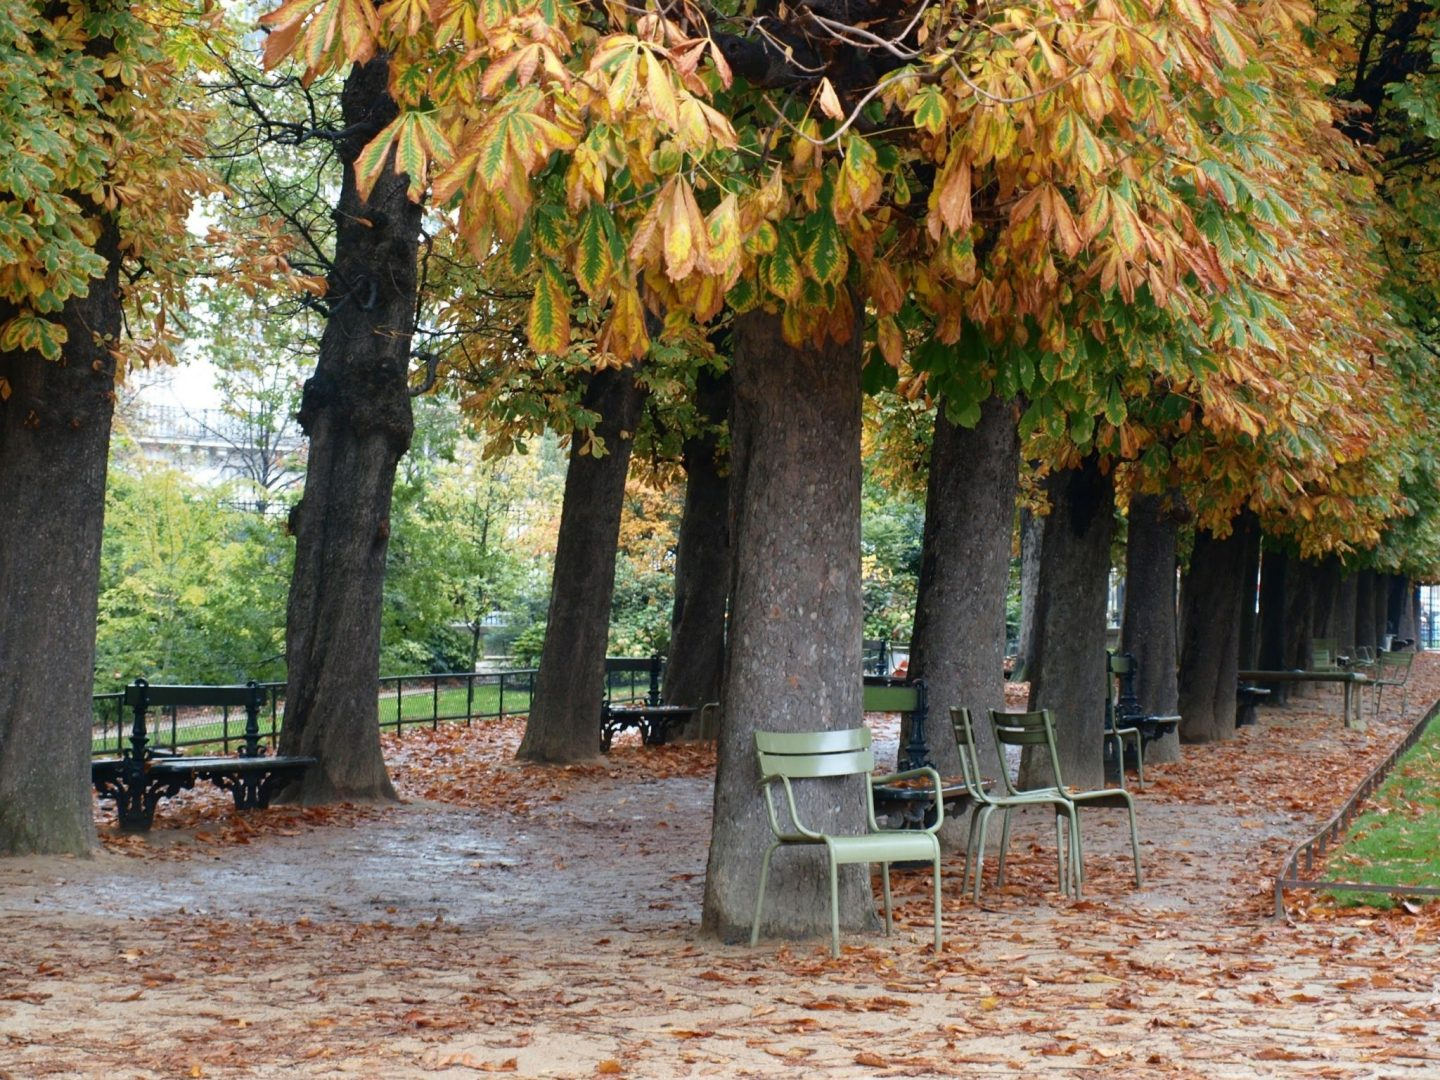 Jardin de Tuileries in Paris in the fall with golden leaves and green chairs